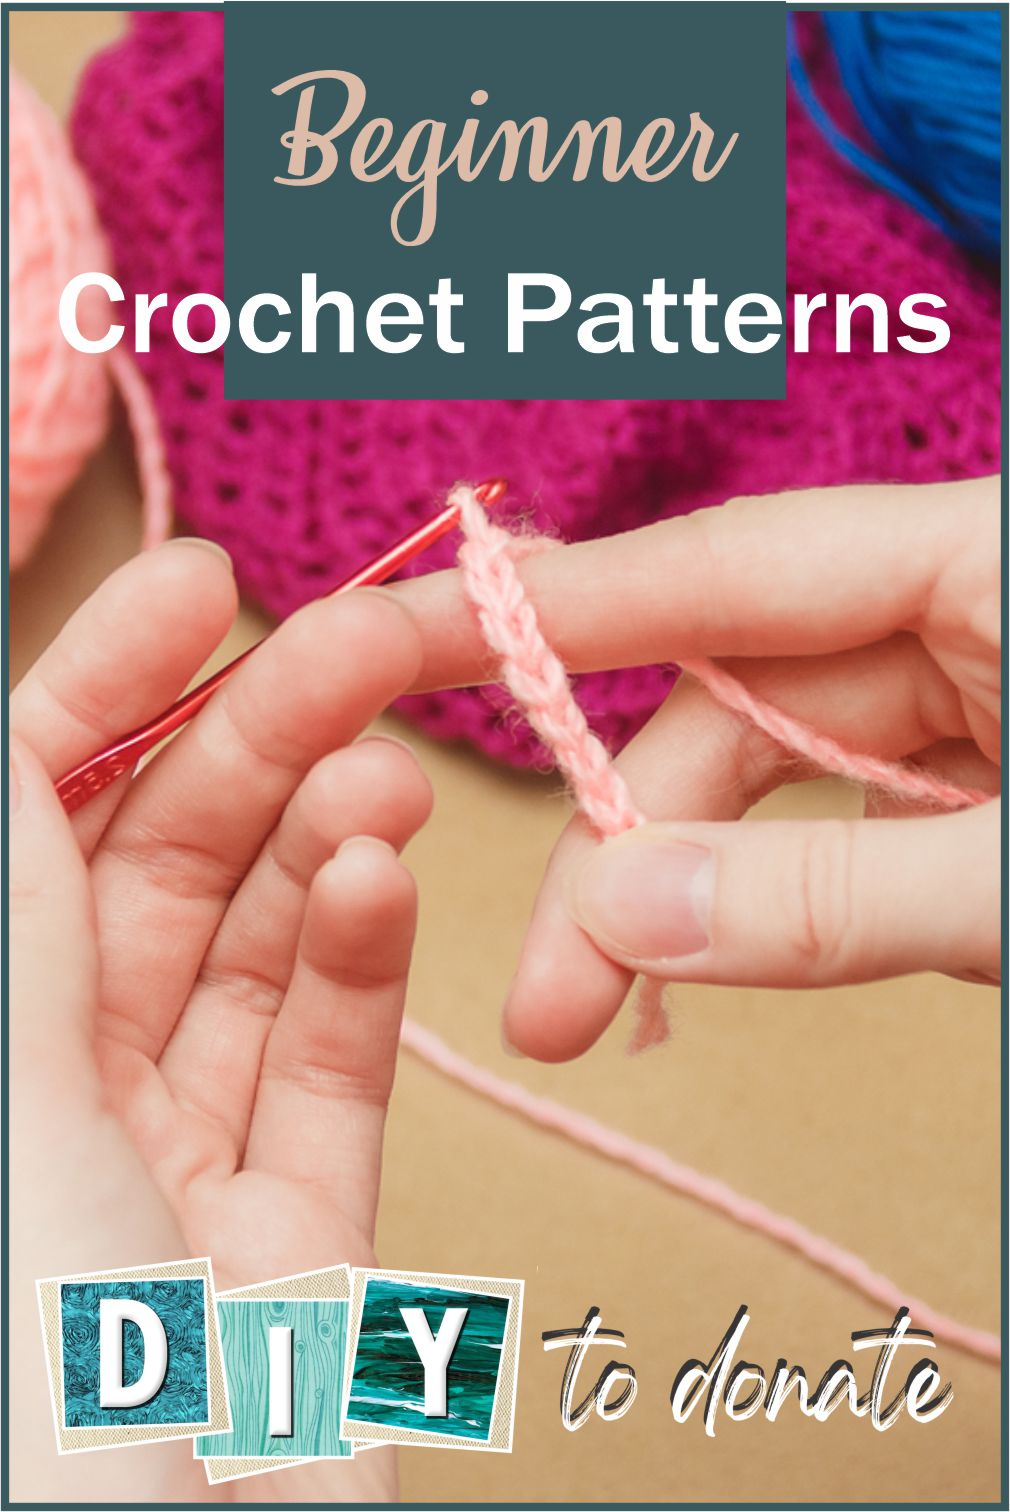 Get the kids involved! We've gathered together easy crochet patterns for beginners who want to make and donate to charities. #diytodonate #diy #crochet #crafts #patterns #crochetpatterns #giveback #donating